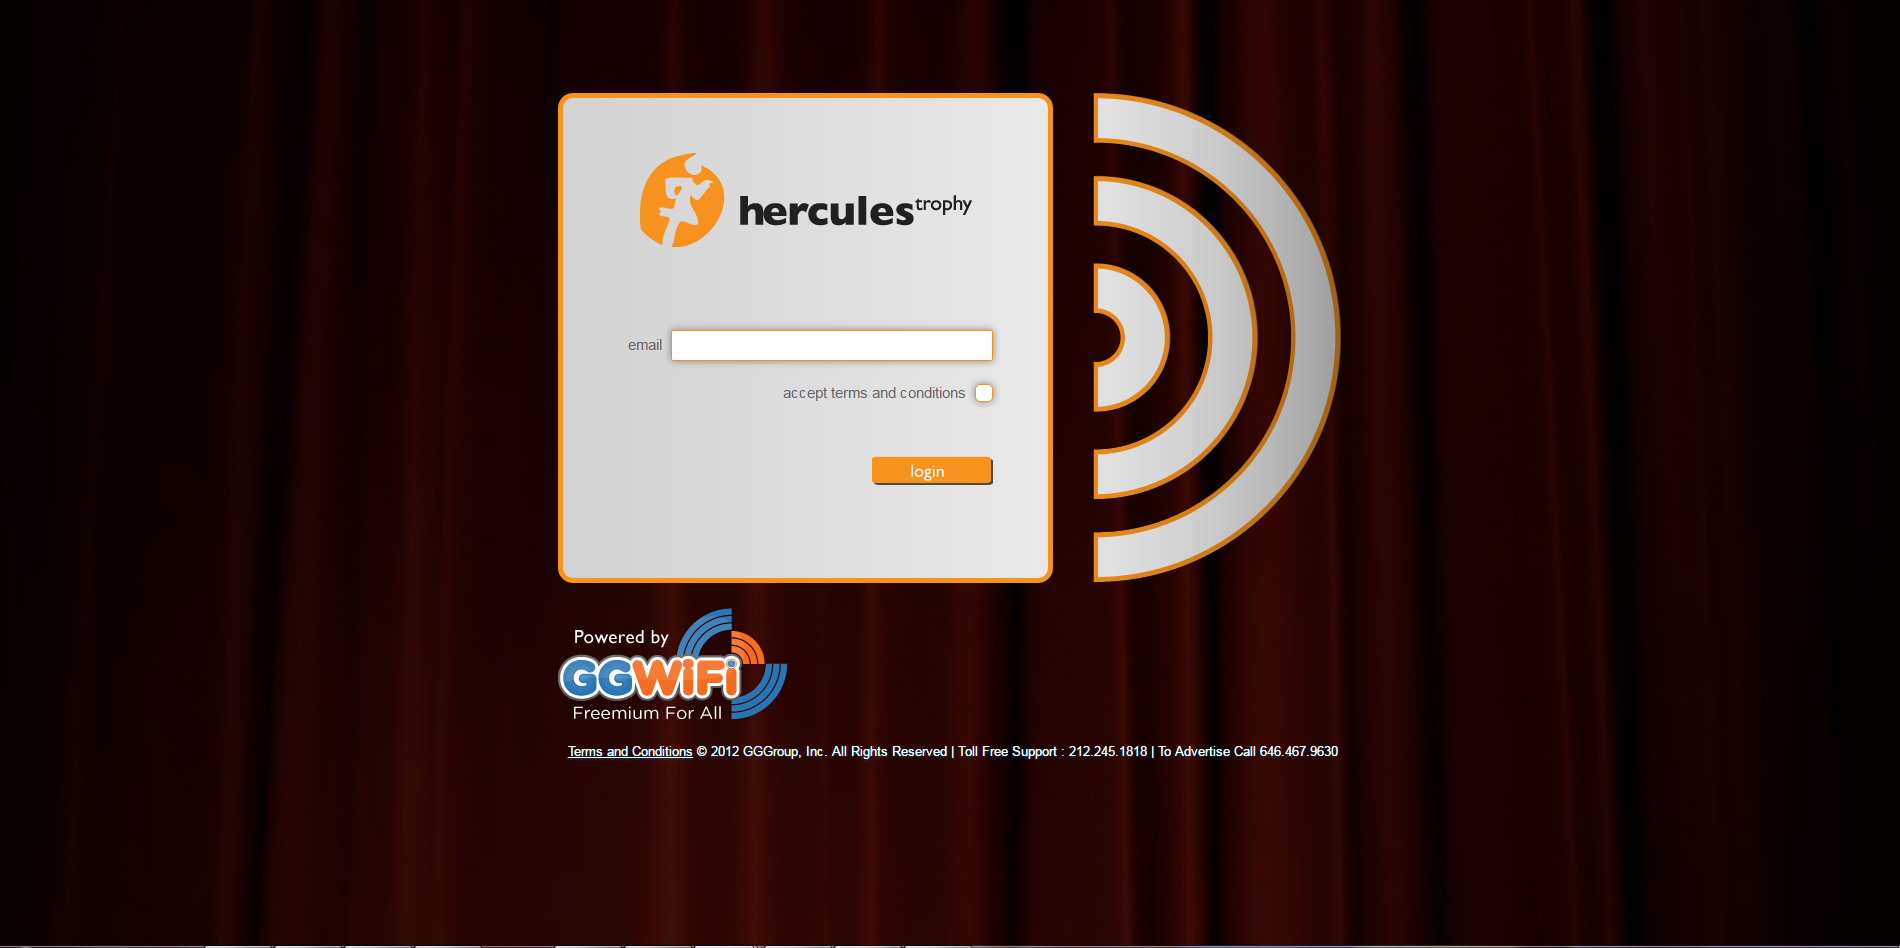 The Hercules Trophy Portal